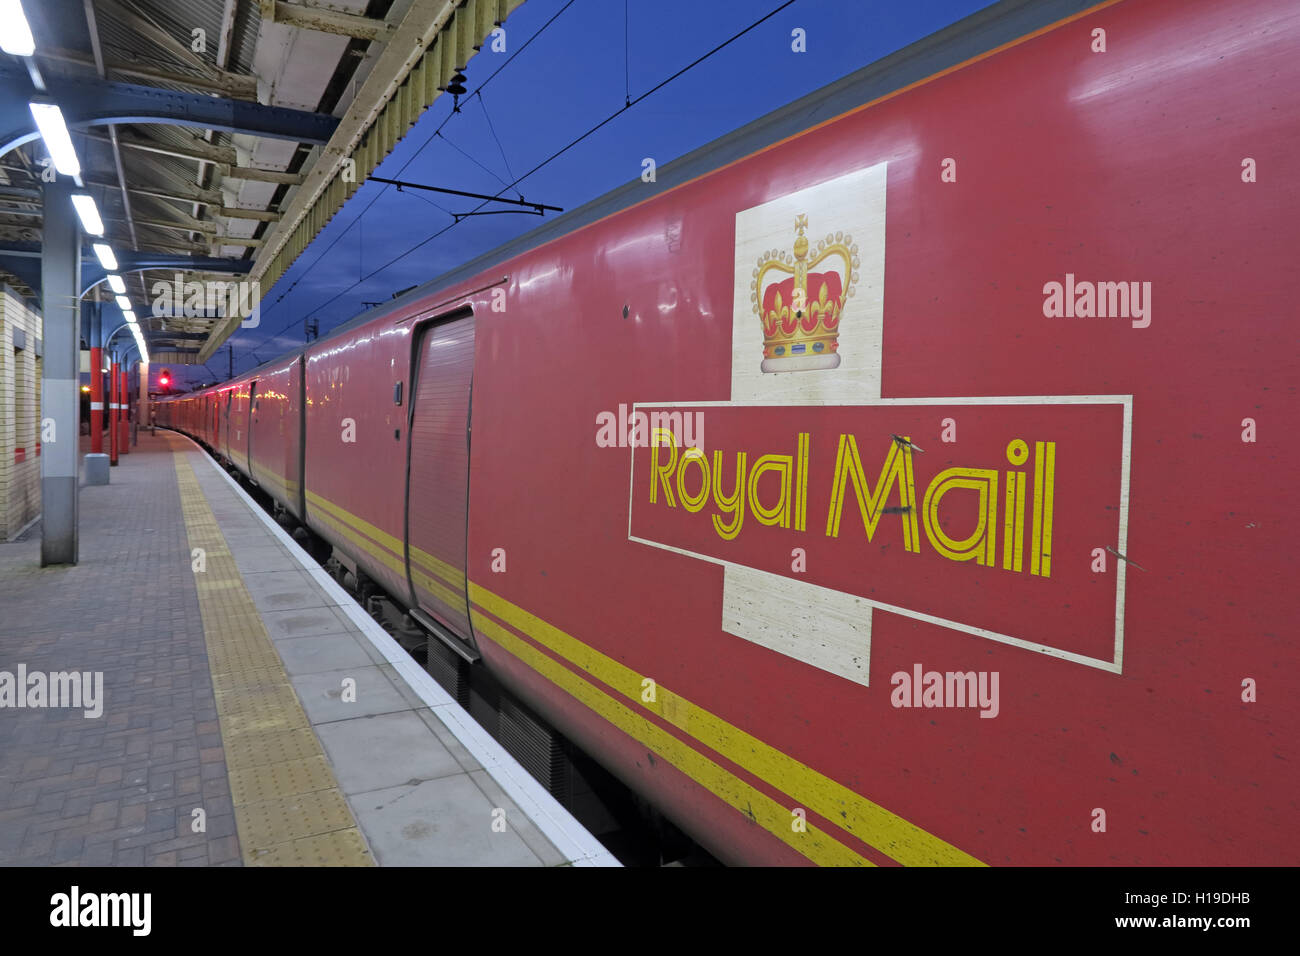 Railway,rail,Royal,Mail,privatised,privatisation,high,speed,diesel,engine,carriage,class325,electric,multiple,units,with,a,northbound,WCML,from,Warrington,Bank,Quay,Station,England,UK,letter,parcel,traffic,transport,dusk,Royal Mail,Class 325,Royal Mail,postal service,Warrington Bank Quay,GoTonySmith,@HotpixUK,Tony,Smith,different,unique,red,northbound,north,bound,rail,railfreight,railways,service,track,tracks,train,trains,BR,transport,transportation,WCML,325,British,class,electric,english,freight,mail,rail,railfrieght,railway,railways,royal,royal mail train,train,trains,uk,Buy Pictures of,Buy Images Of,Images of,Stock Images,Tony Smith,Photo of,class 325,class 325 emu,electric multiple unit,mail train,rail freight,royal mail postal,WCML postal,West Coast Mail Line,West Coast Main Line,british trains,mail train,UK railways